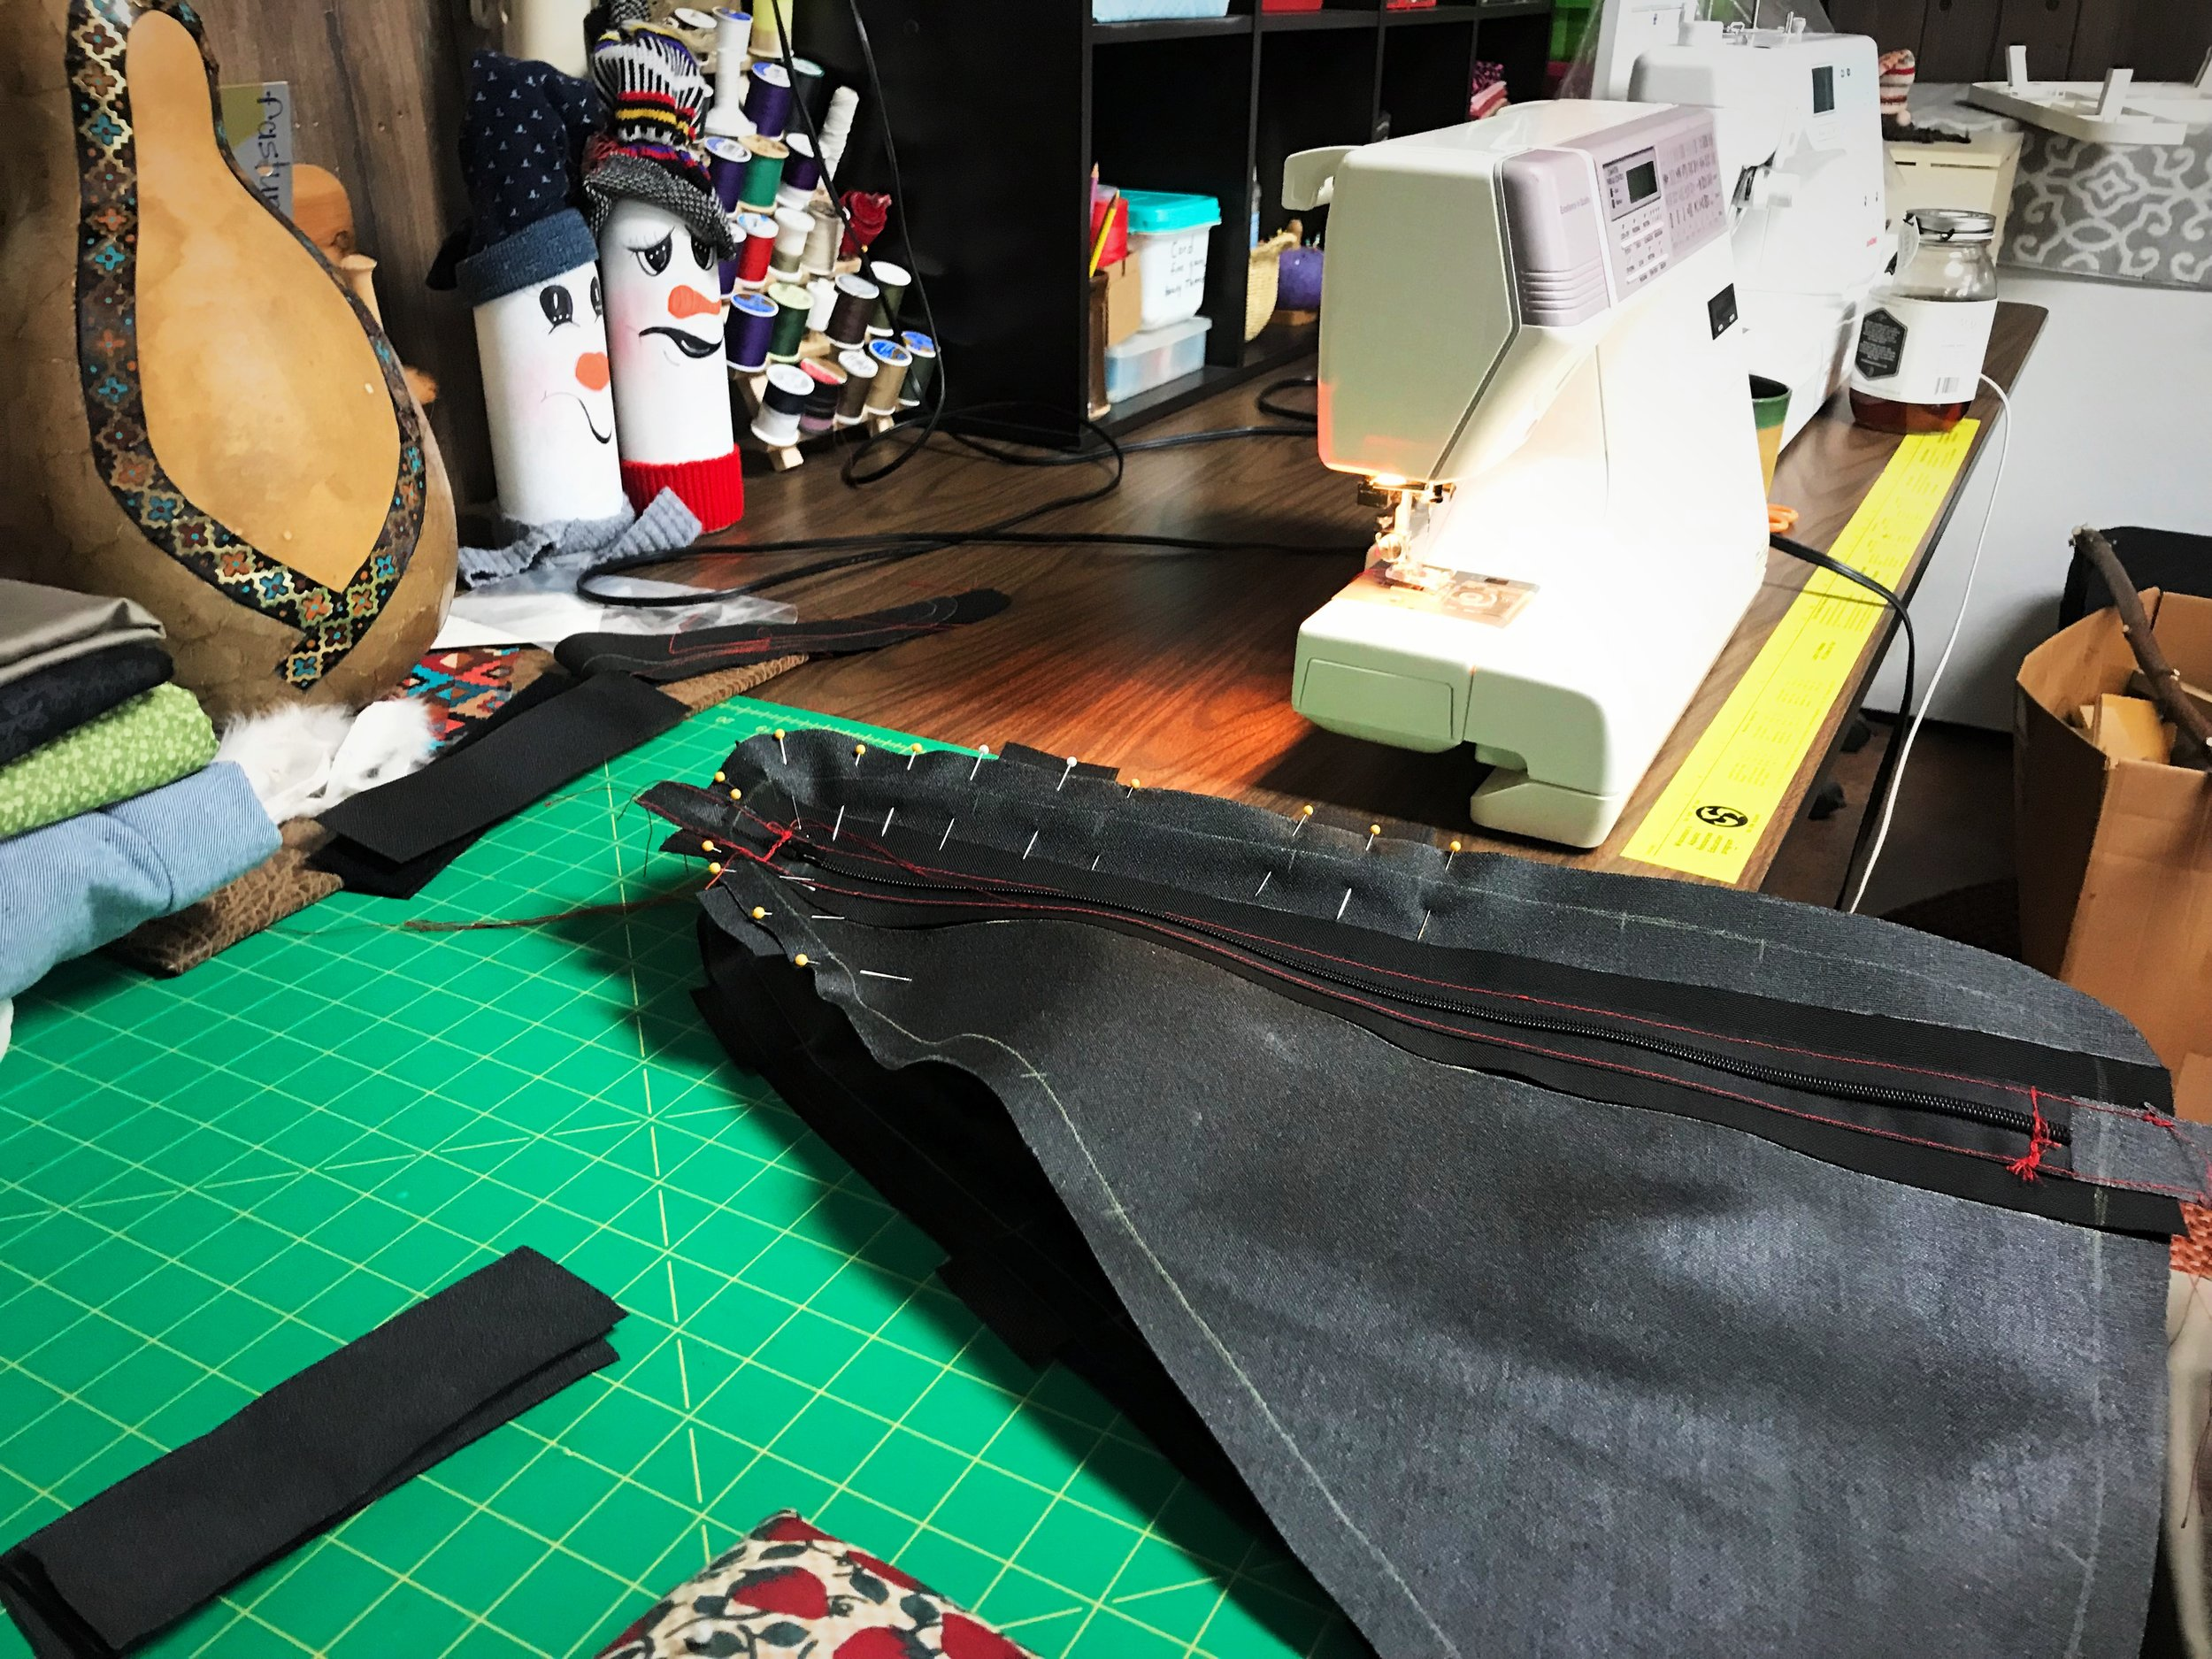 Sew along the line that you traced, leaving the buffer along the edge so that the bag will be the right shape for your bike.